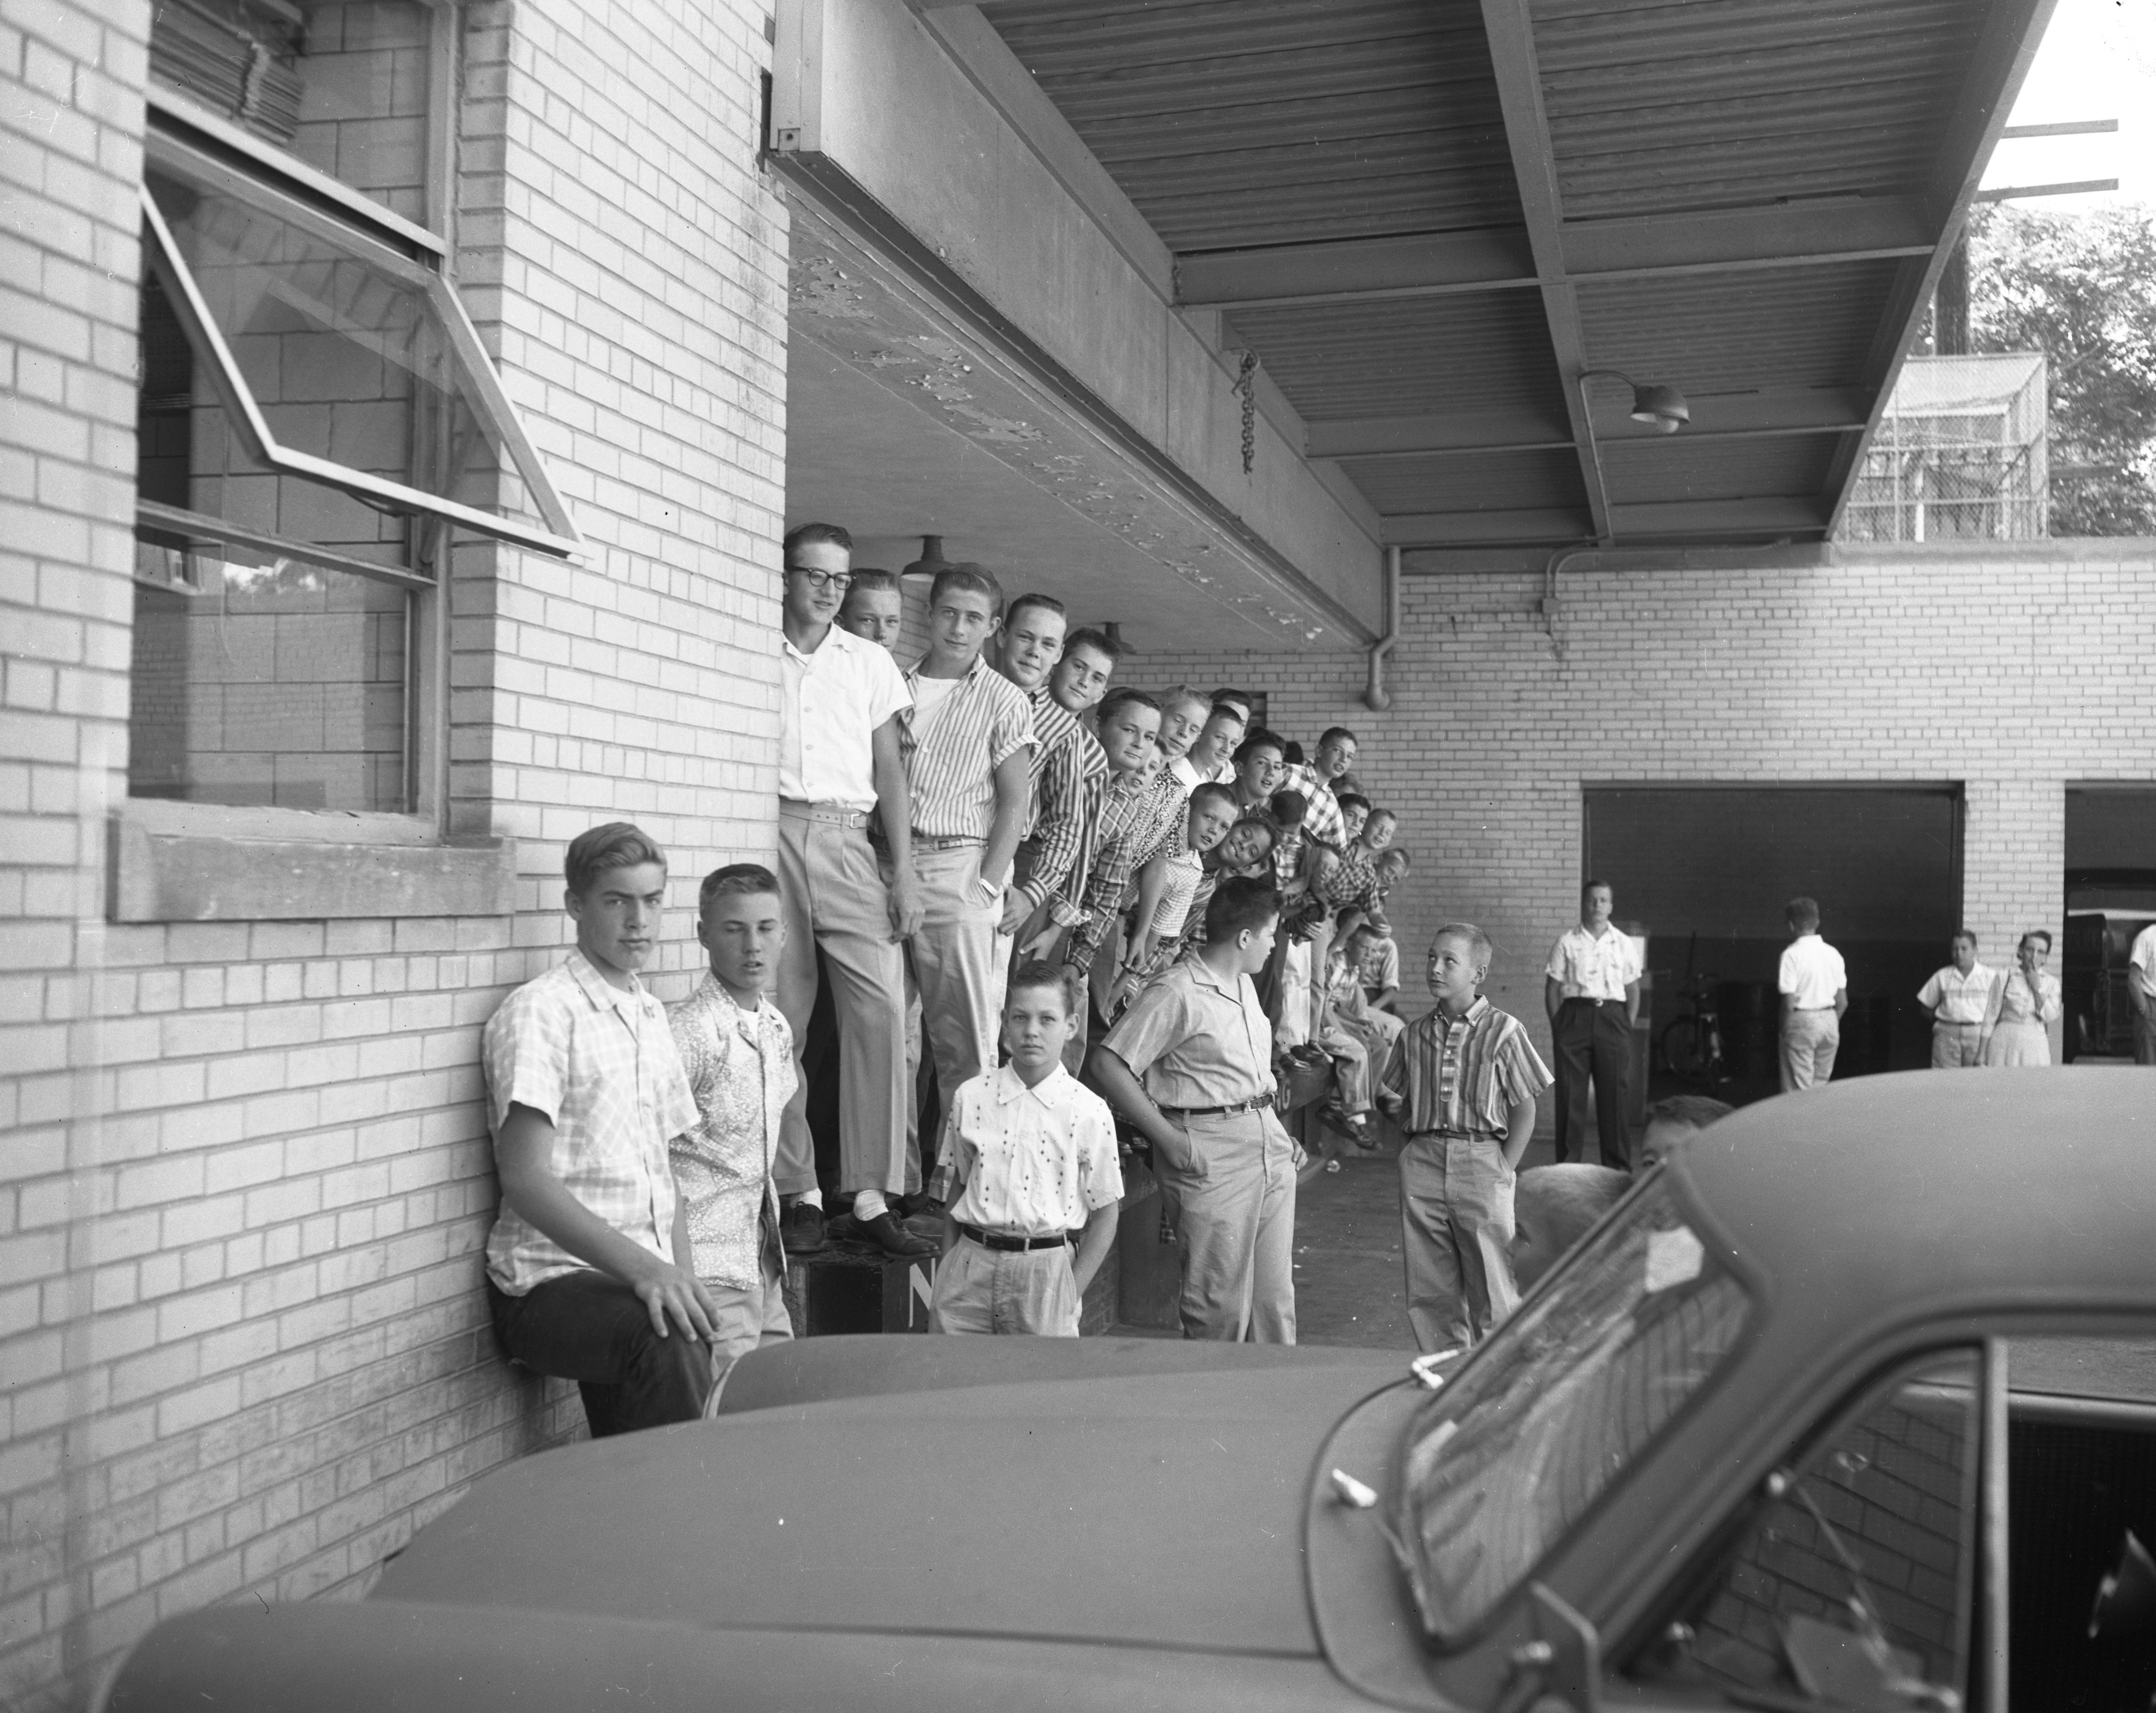 Ann Arbor Newsboys are ready to attend baseball game in Detroit, August 1957 image